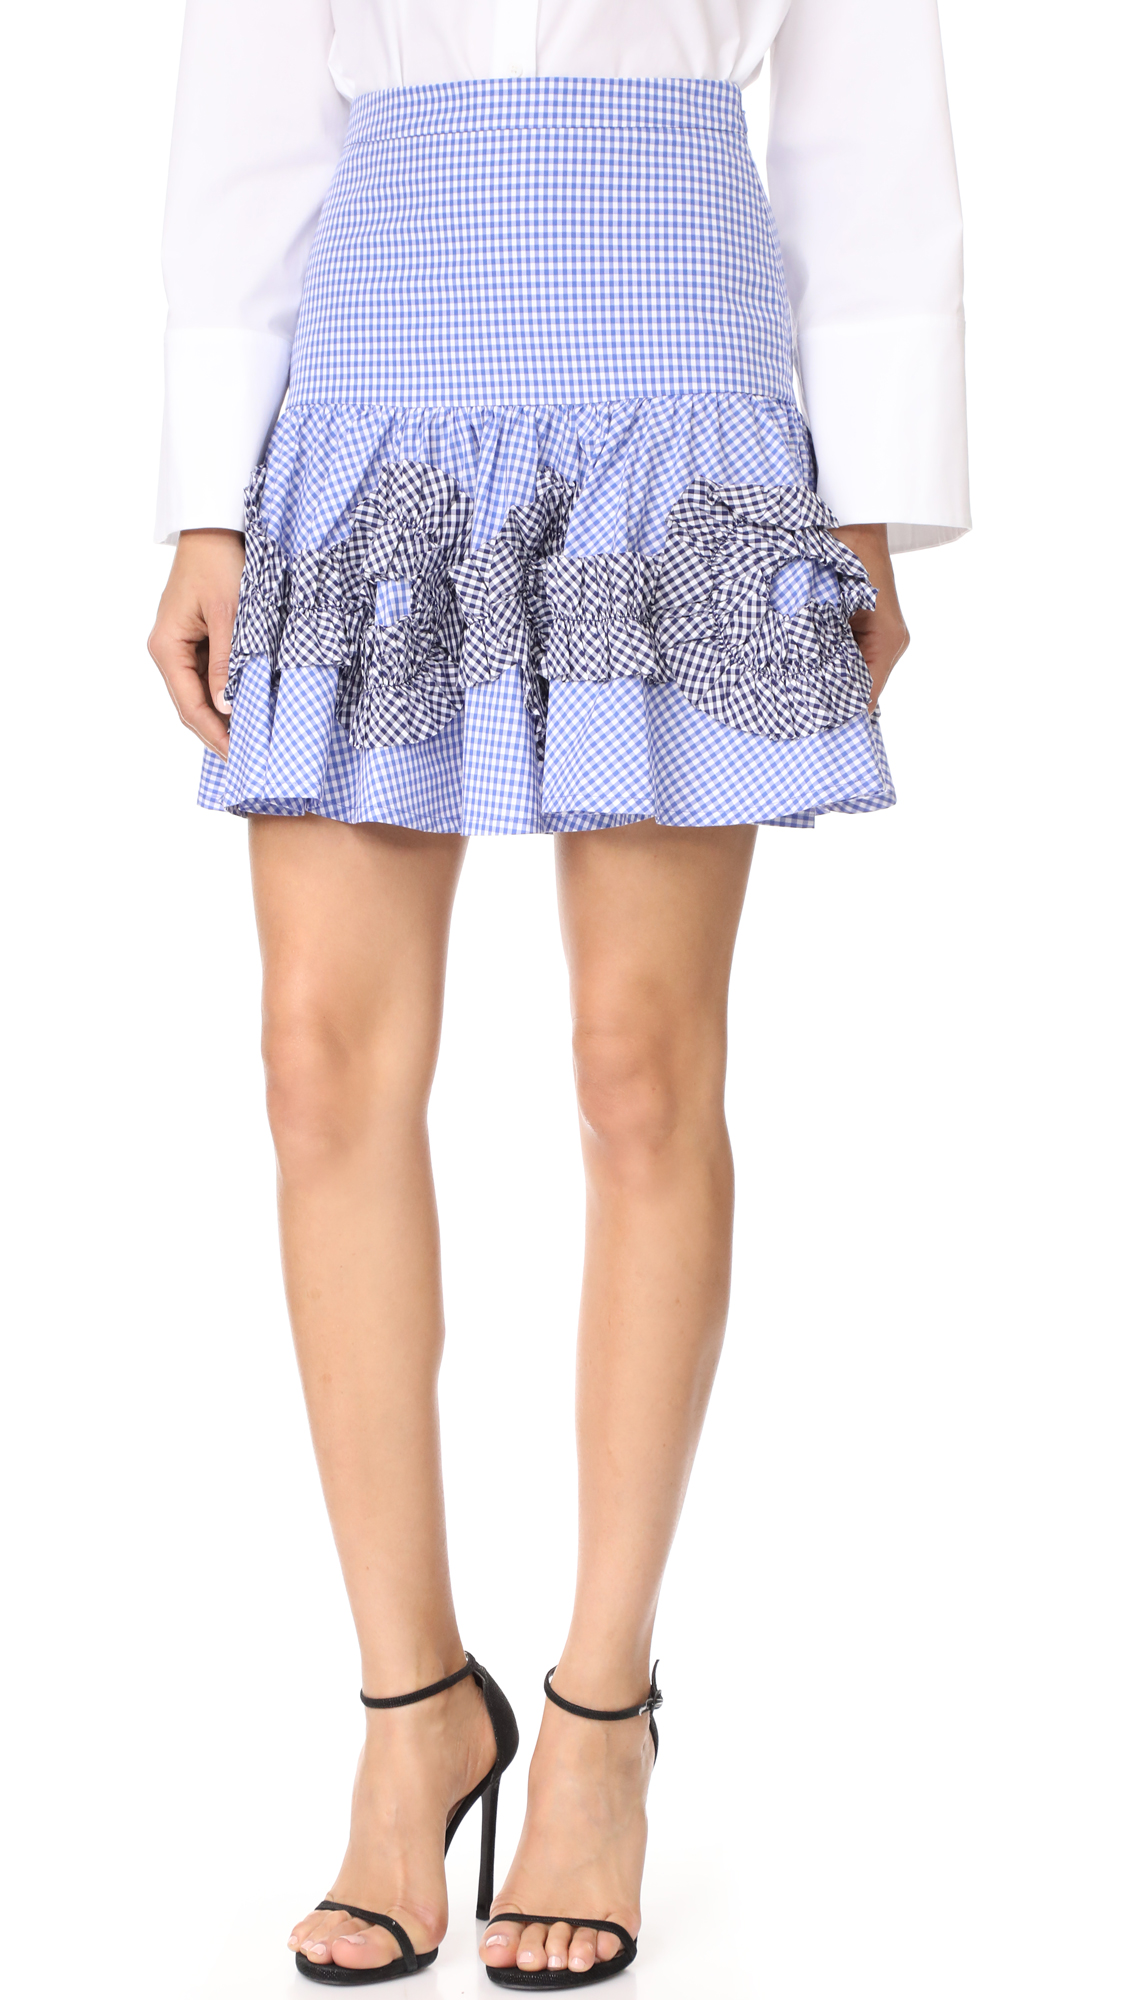 Alexis Daly Skirt - Blue Gingham